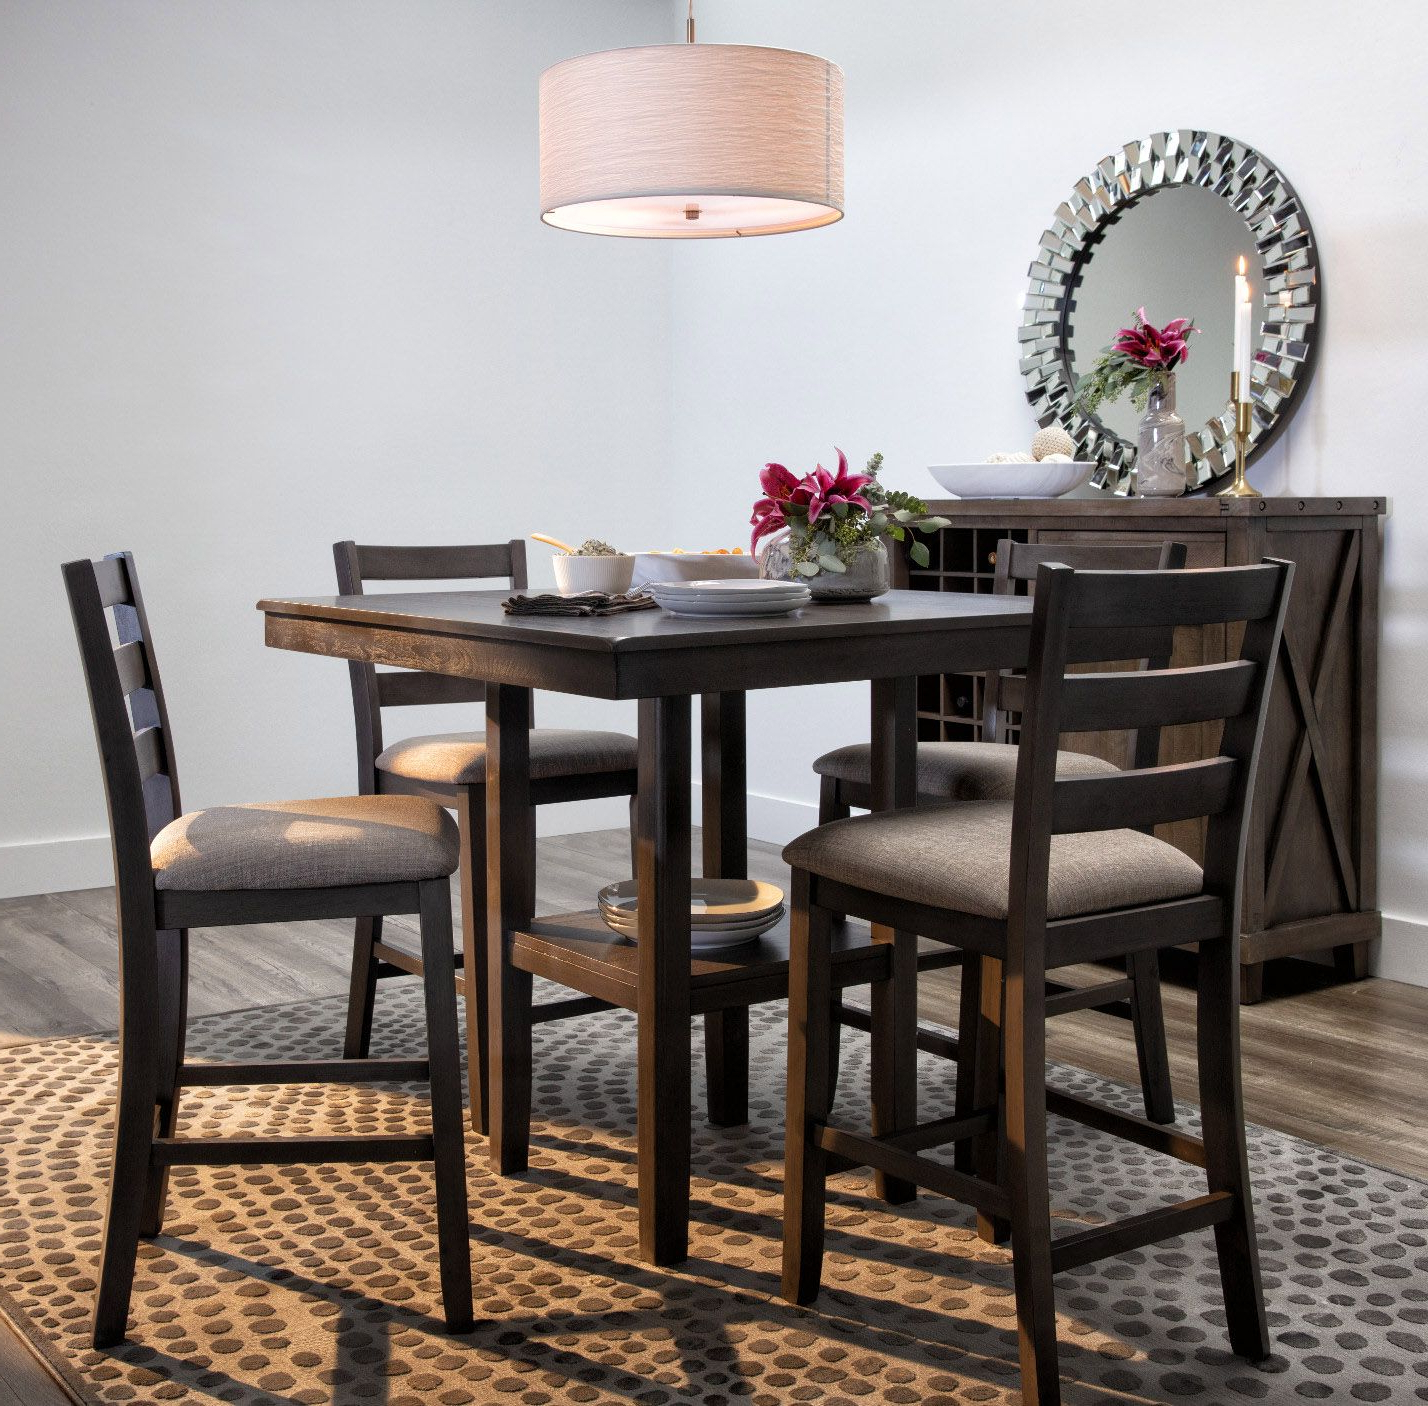 Dining Room Decor Throughout Transitional 4 Seating Drop Leaf Casual Dining Tables (View 7 of 25)